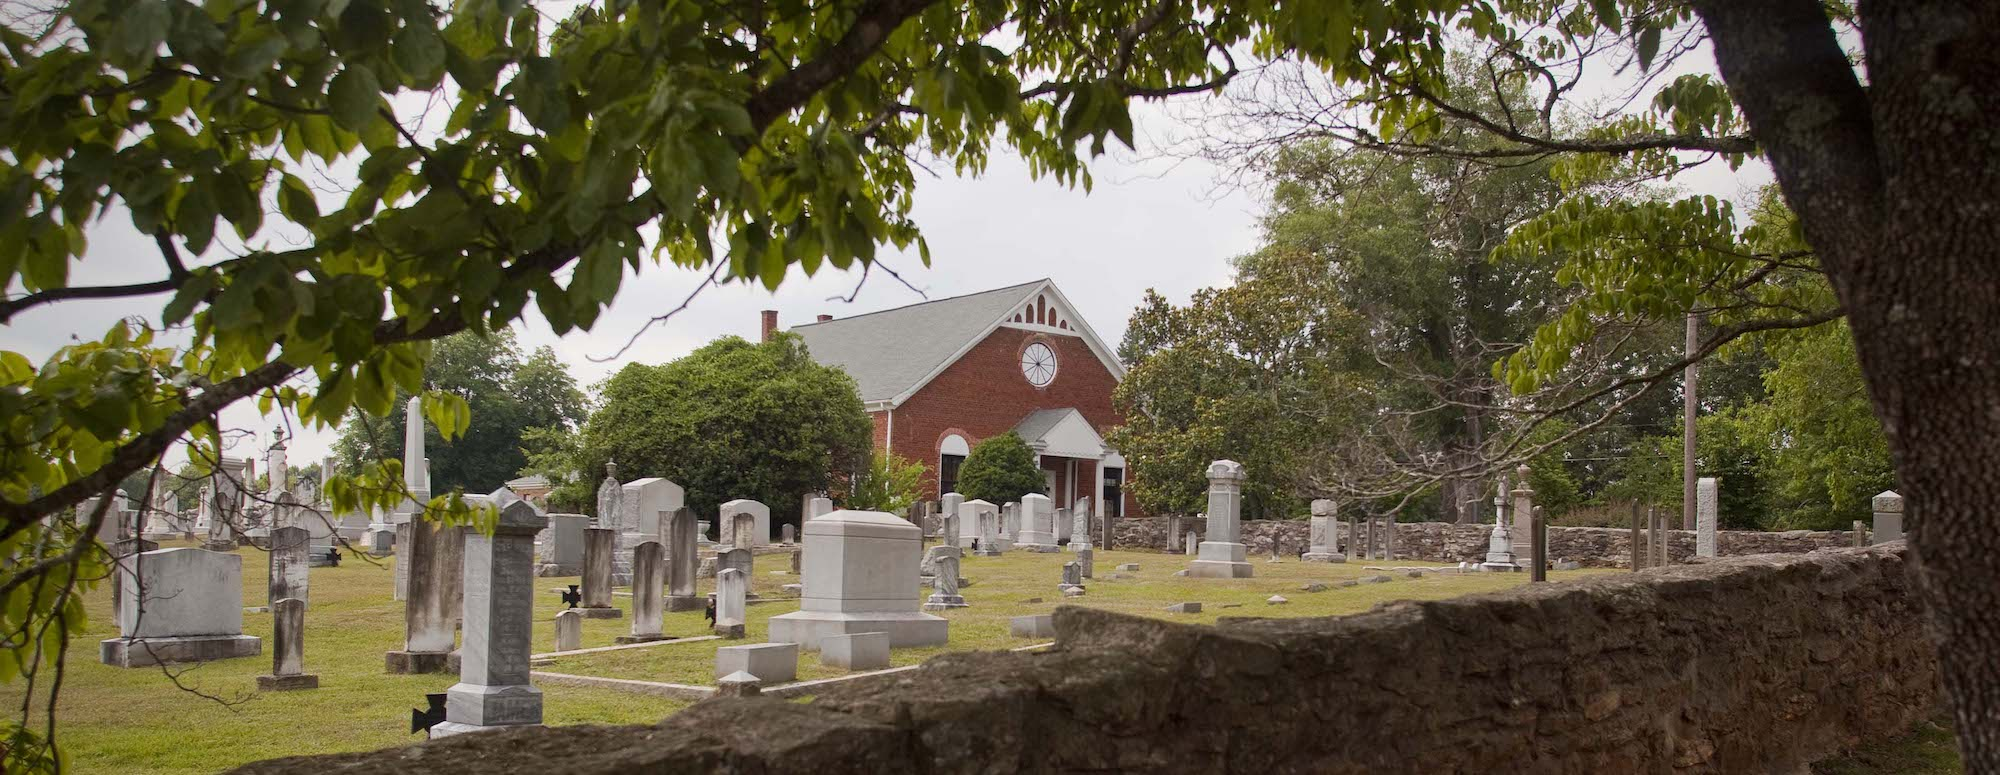 Local Cemeteries: Two-and-a-Half Centuries of History